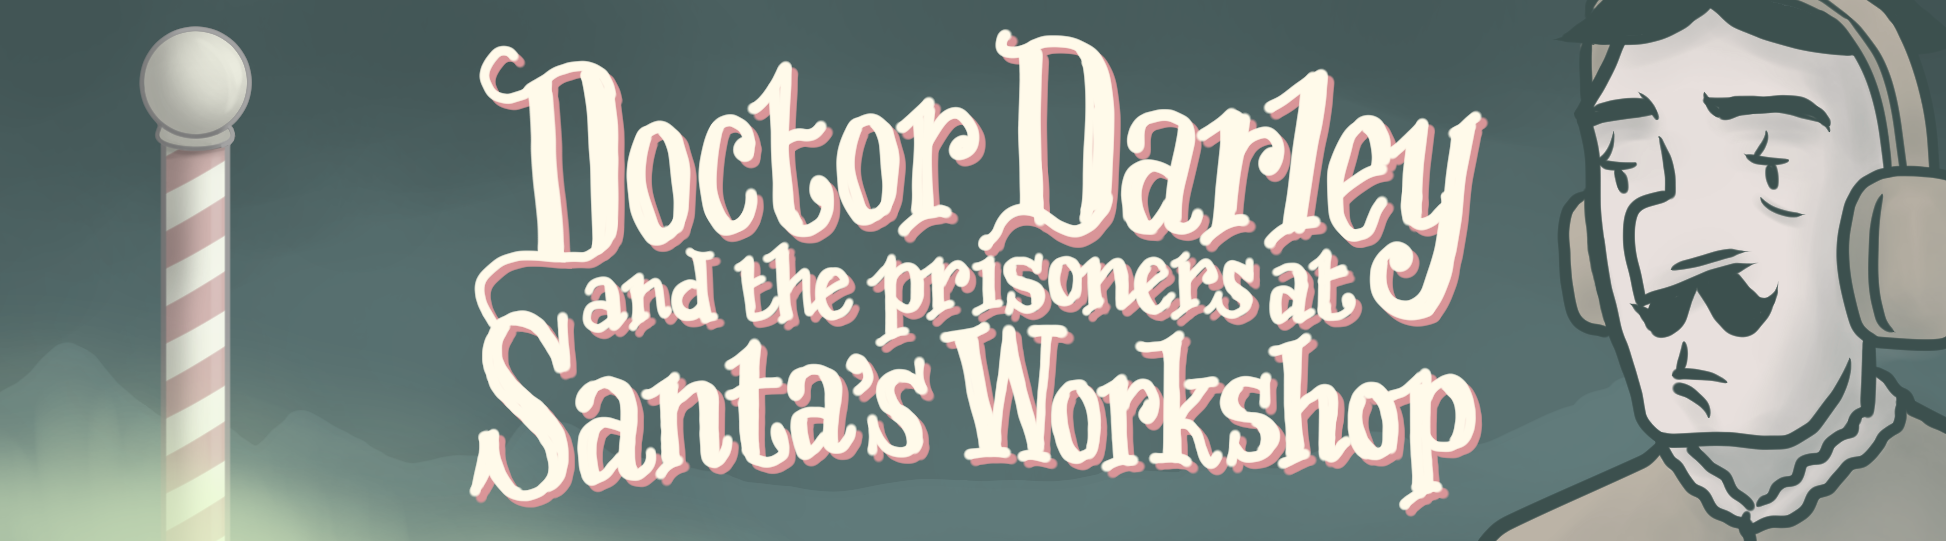 Dr. Darley and the Prisoners at Santa's Workshop